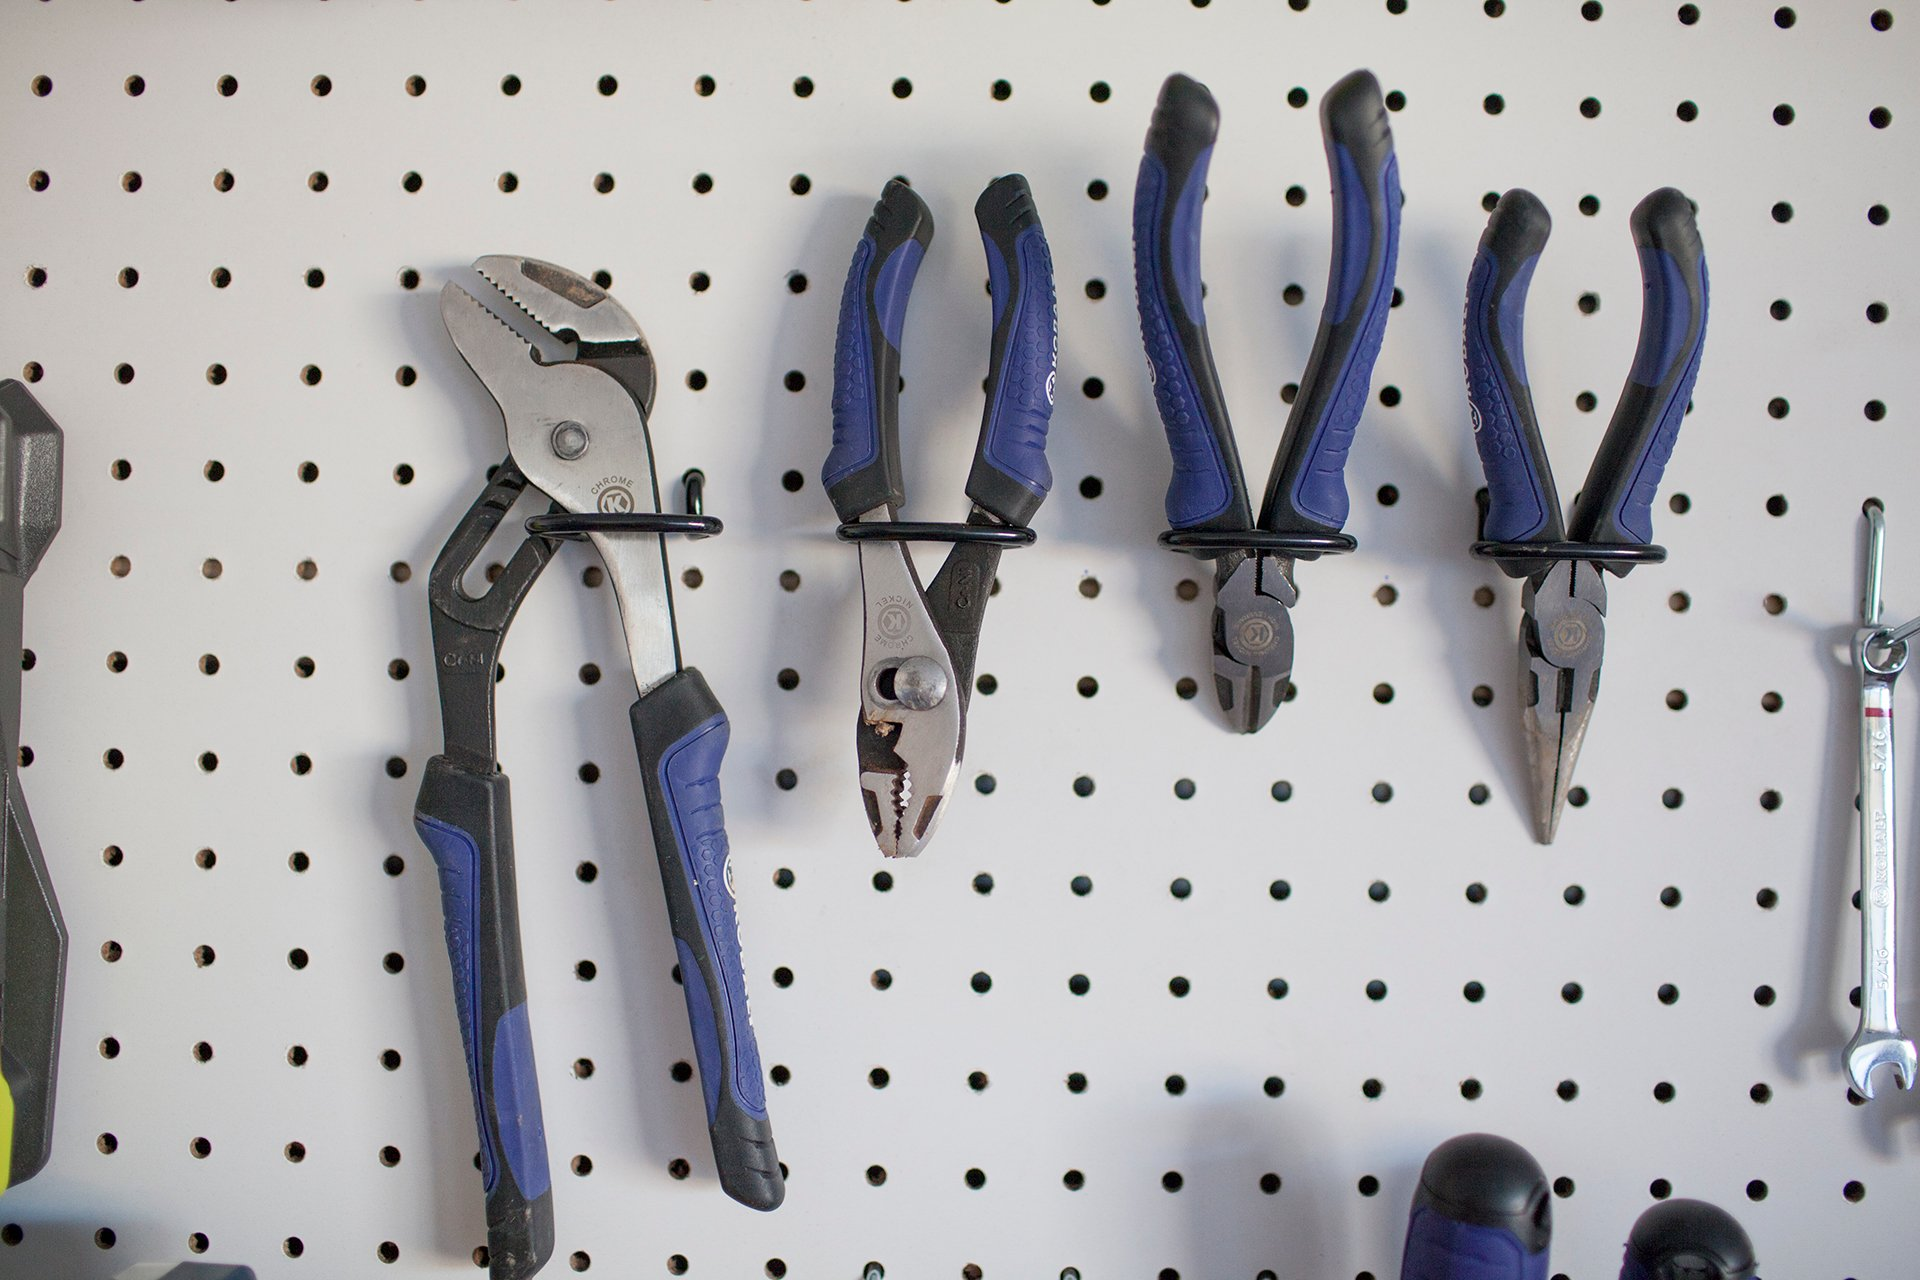 hang pegboard accessories and tools to organize garage